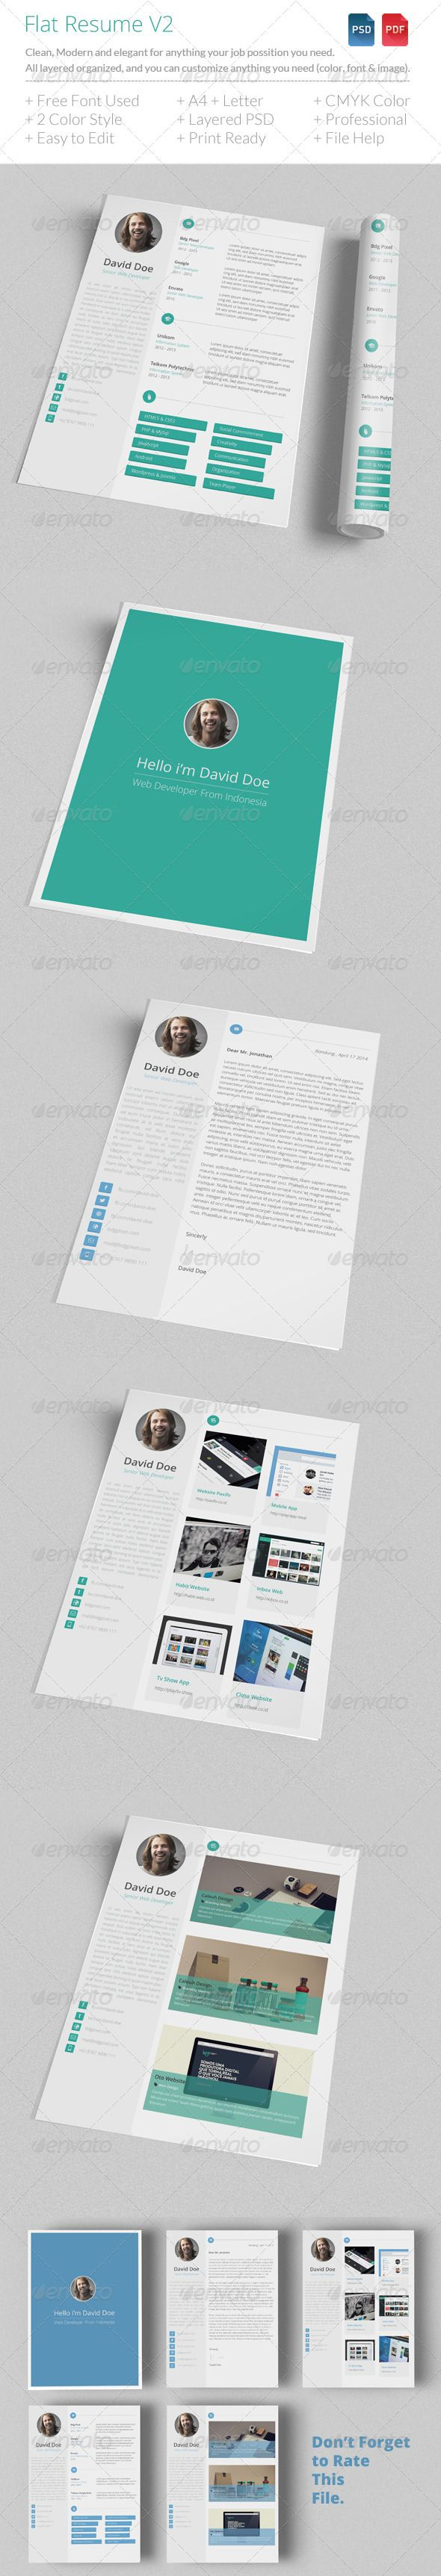 Flat Resume V2 | Resume cv, Fonts download and Flat design